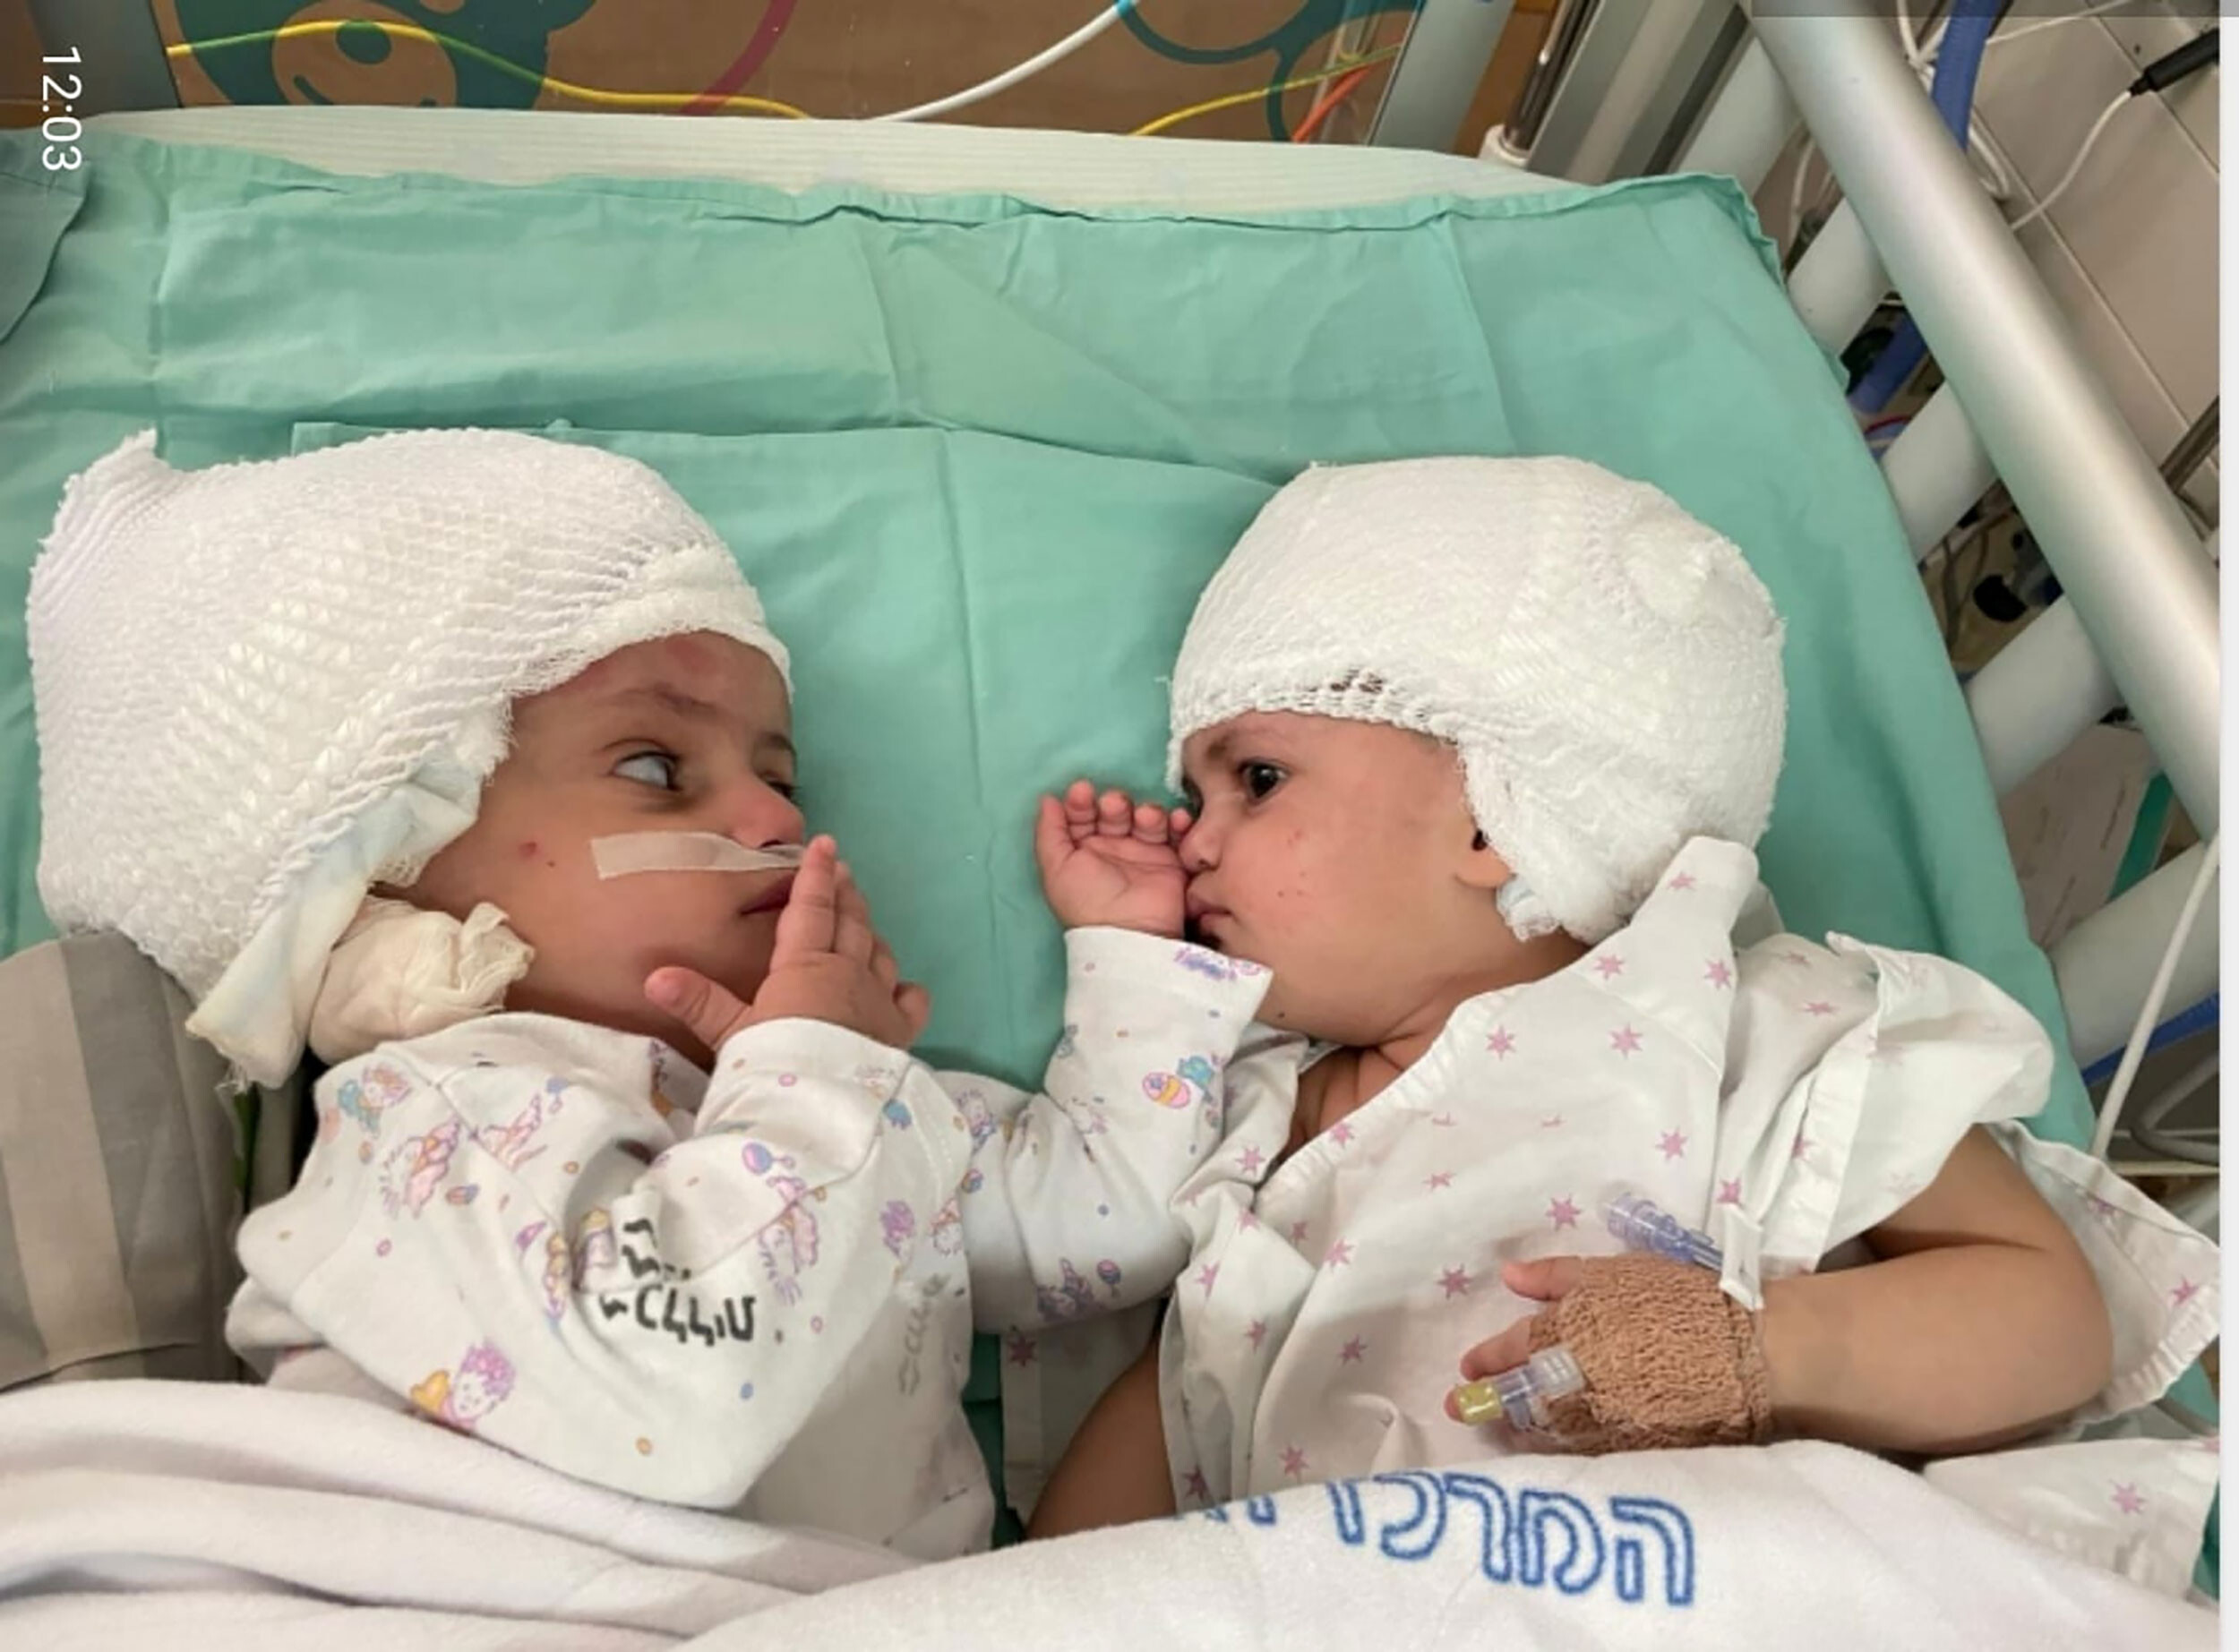 Twins joined at the head are separated after 12-hour surgery in Israel